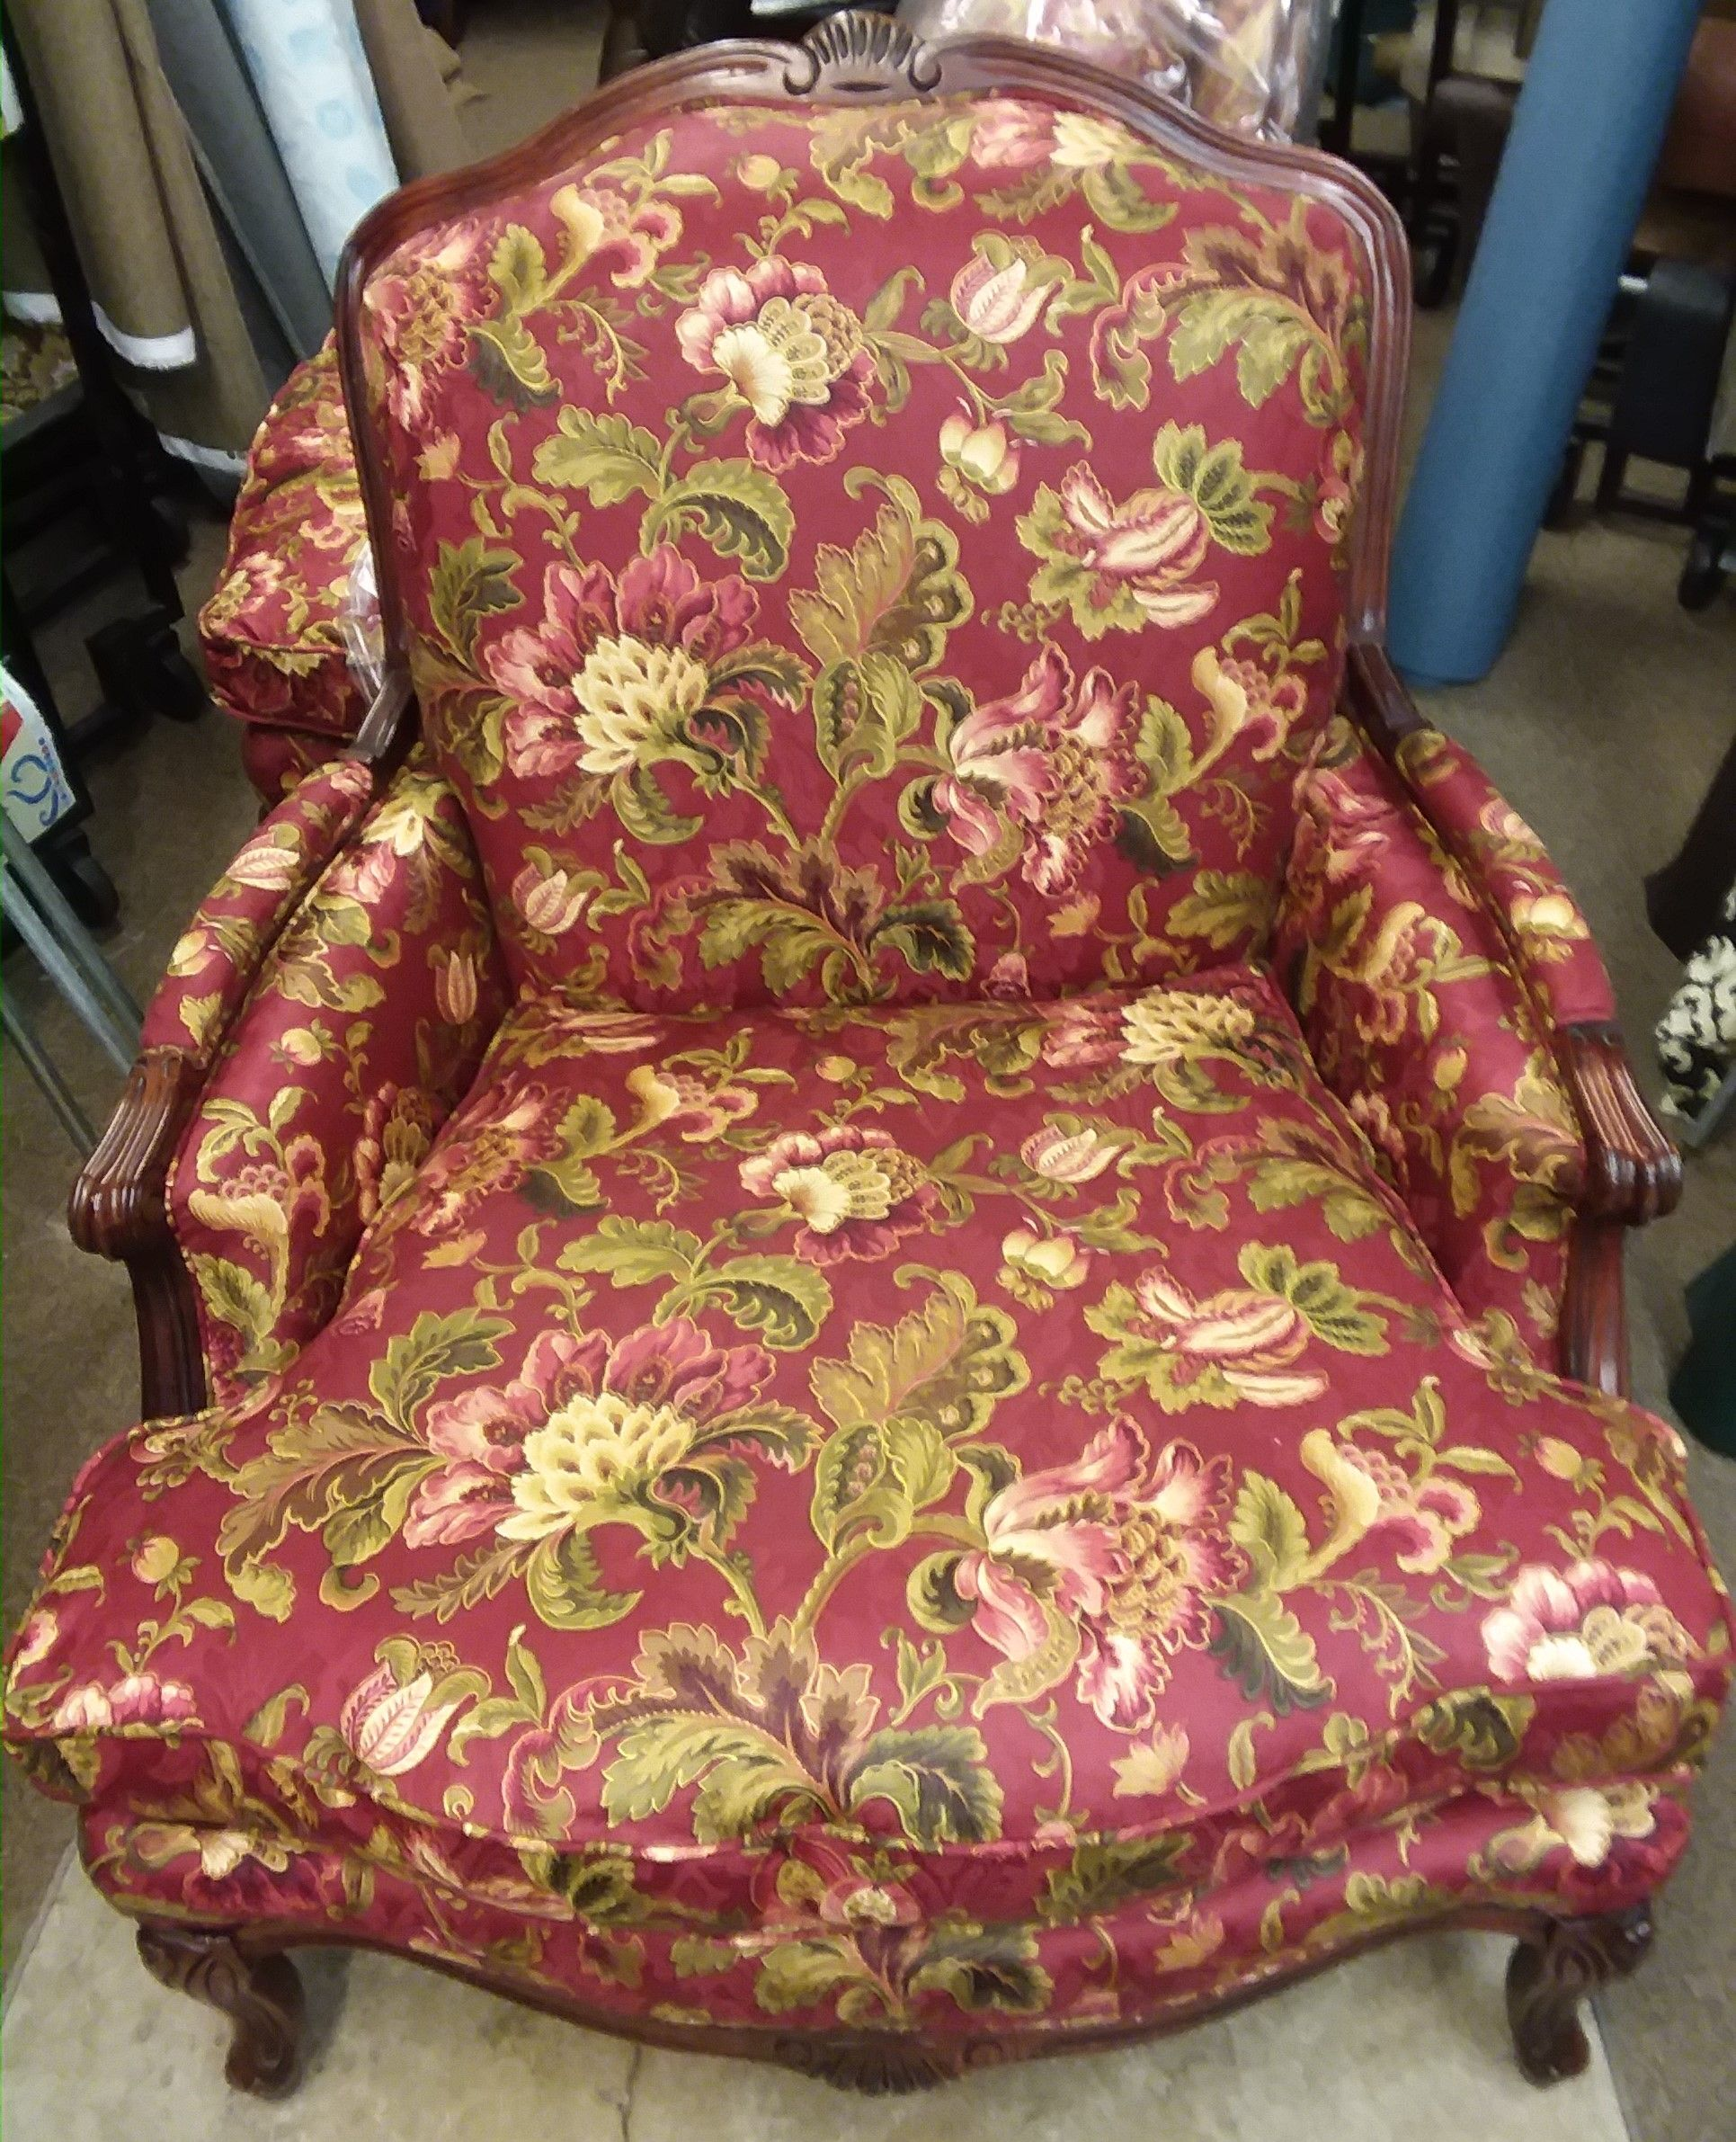 Chair upholstered in bright red cotton pattern